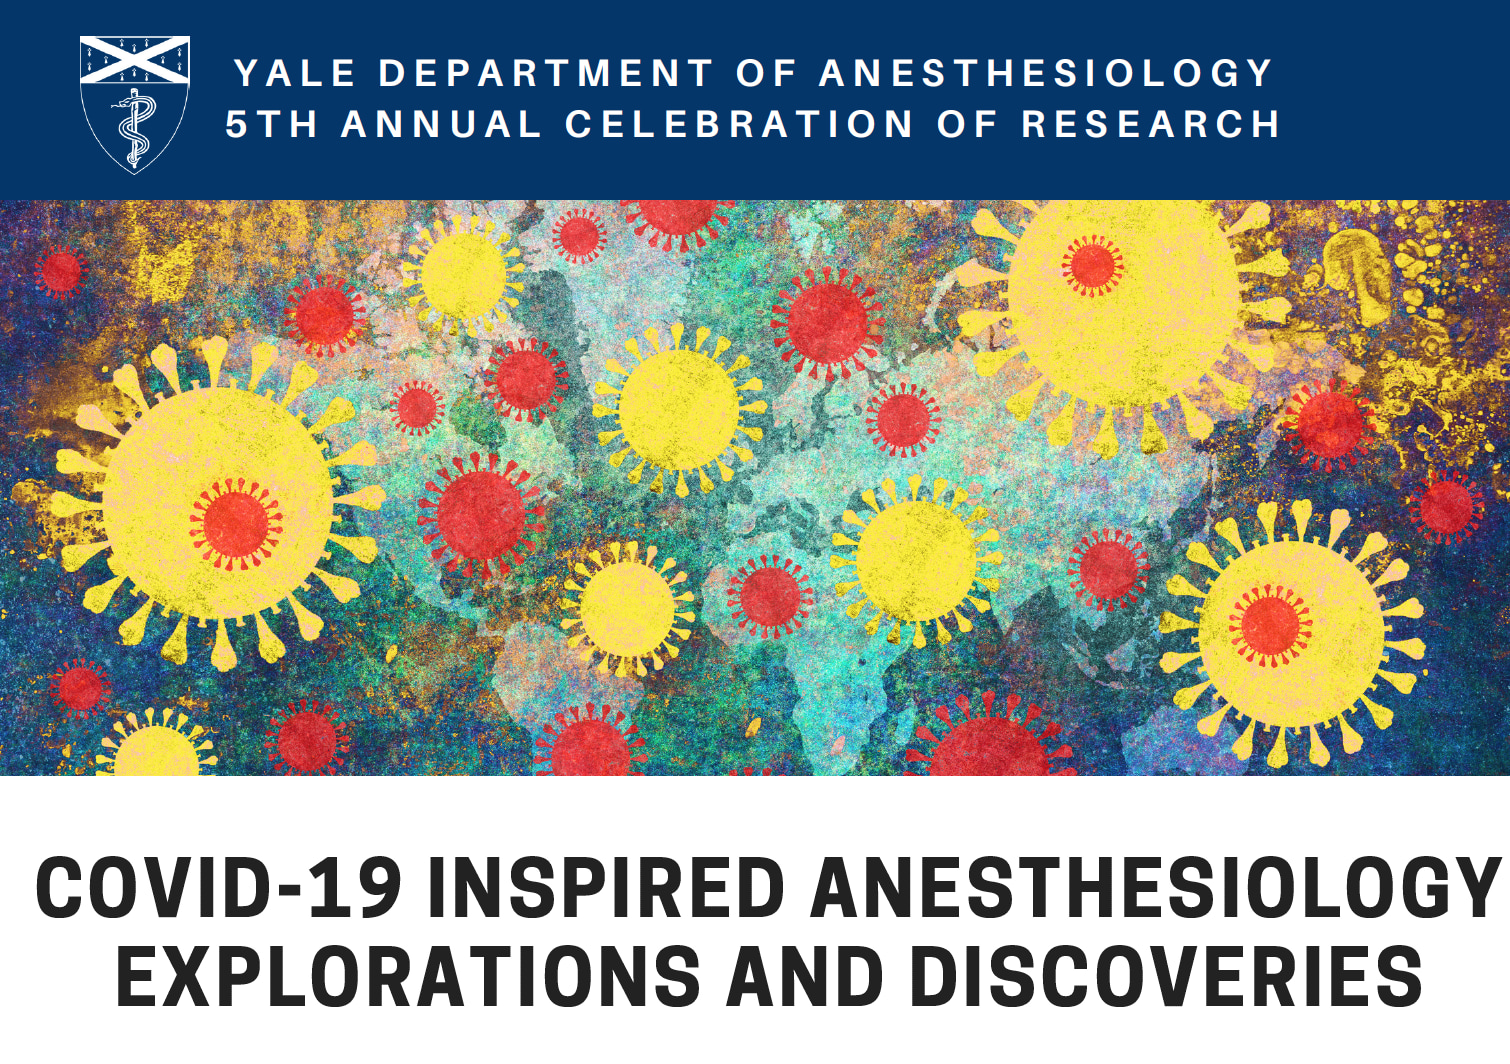 the Department of Anesthesiology 5th annual Celebration of Research